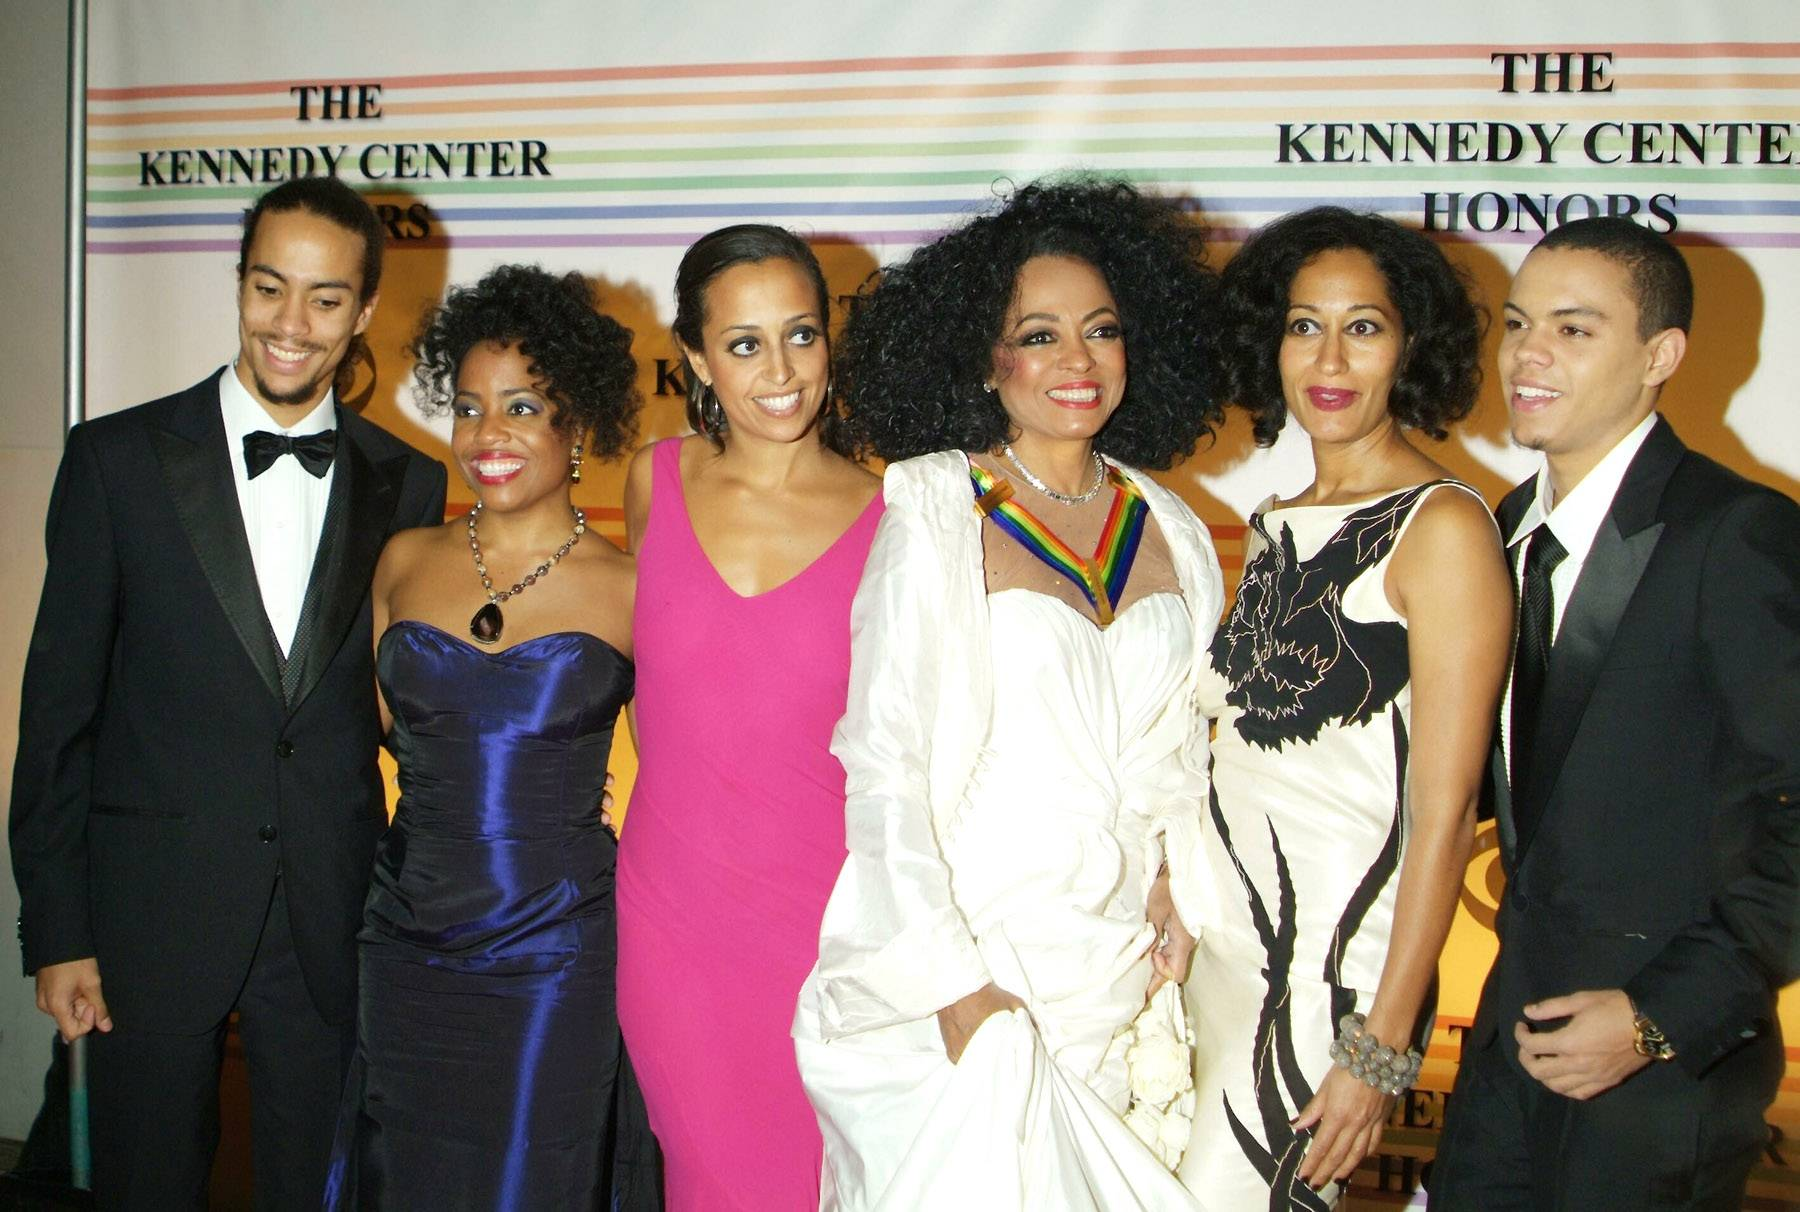 The Royal Ross Family  - Diana Rosshas five beautiful kids, and two of them may or may not come as a surprise to you. Tracee Ellis Ross of Black-ish and Evan Ross of ATL both are the famous Diana Ross's children, their fathers are Robert Ellis Silberstein and Arne Naess Jr. accordingly.(Photo: Young/Drummond / Splash News)